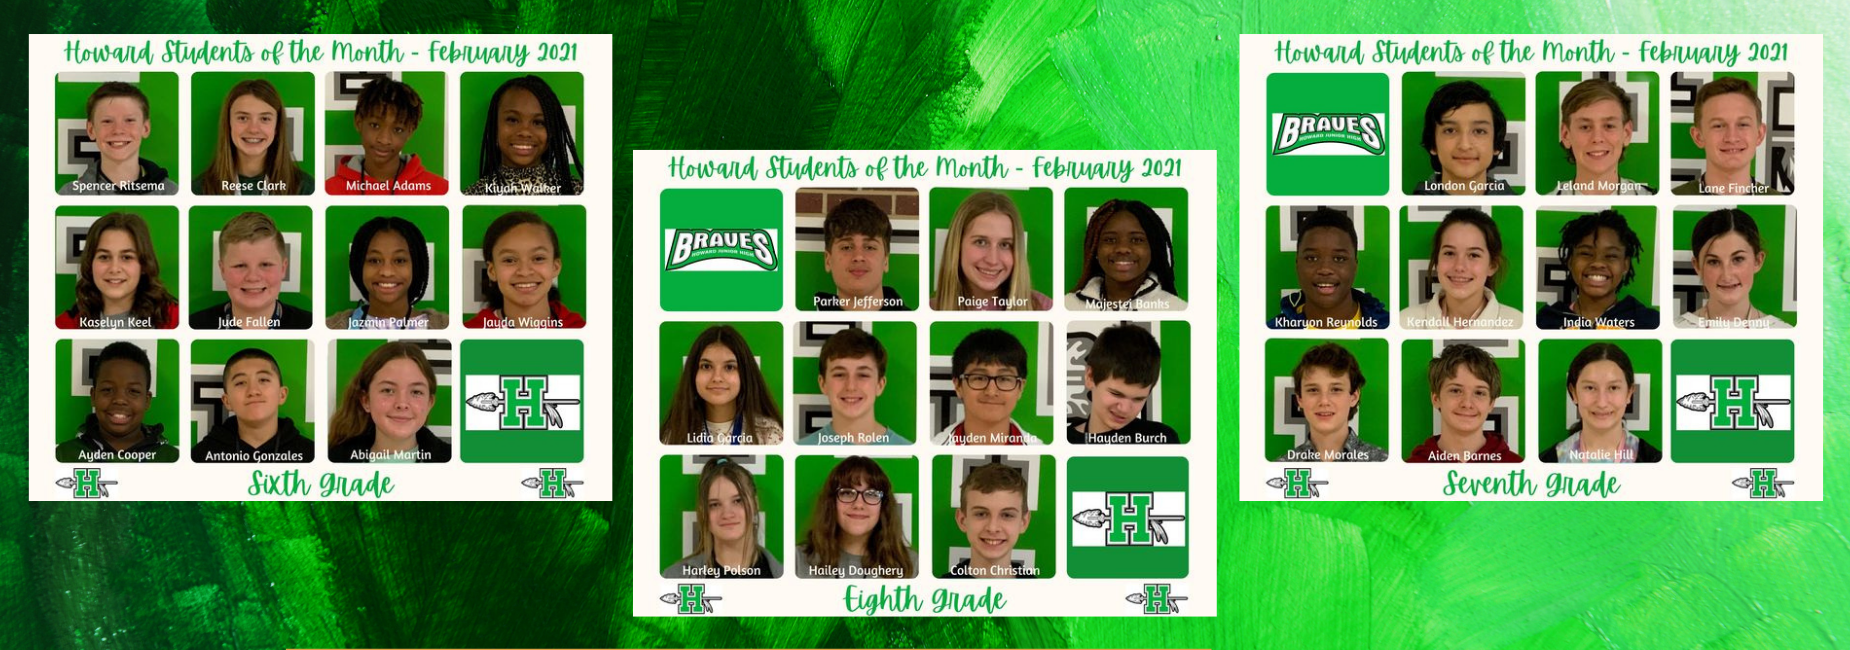 3 graphics with photos of students of the month